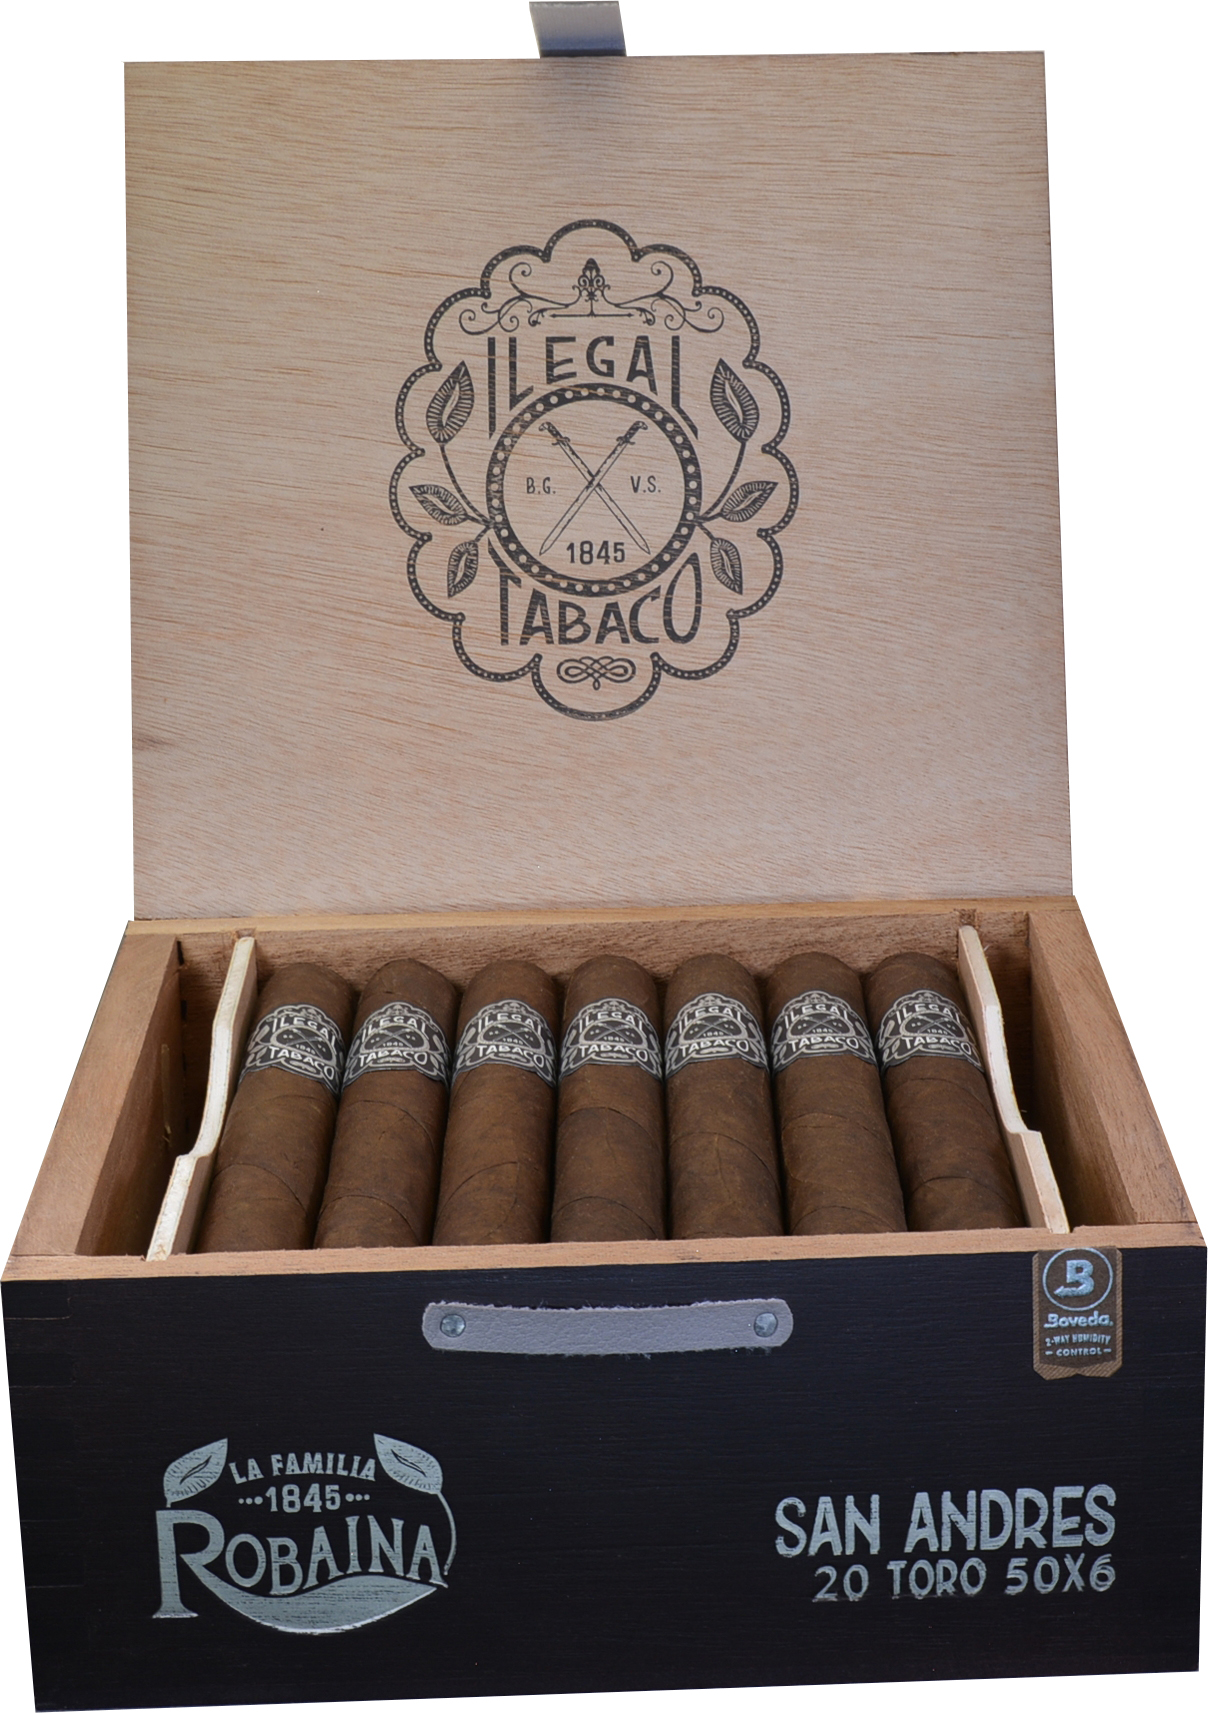 Cigar News: La Familia Robaina Ilegal Set to Hit Stores